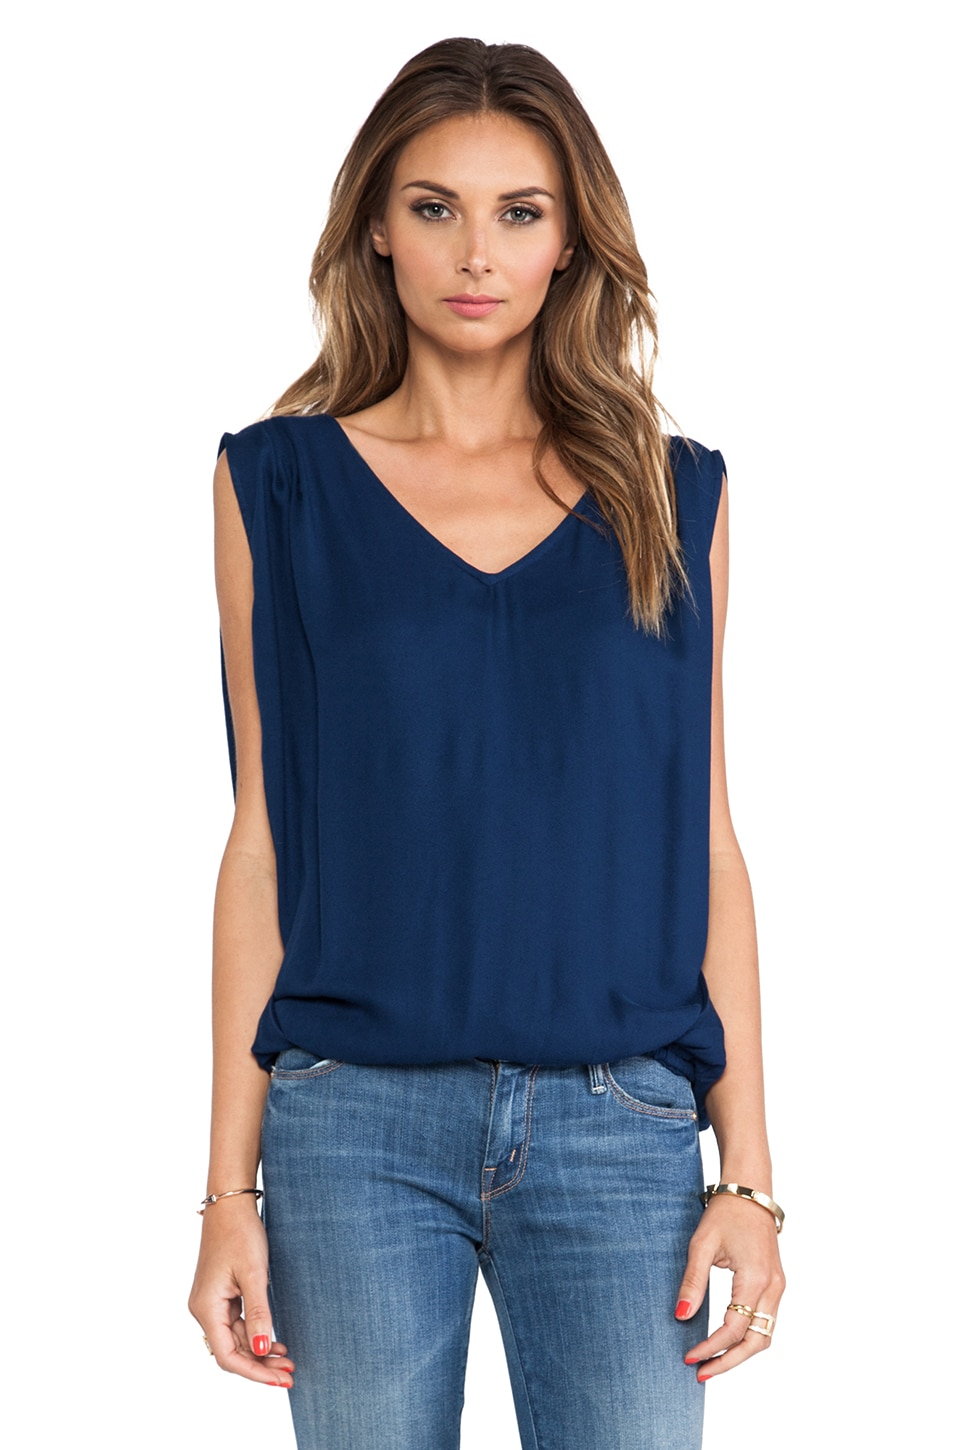 Ella Moss Stella Sleeveless Top in Navy